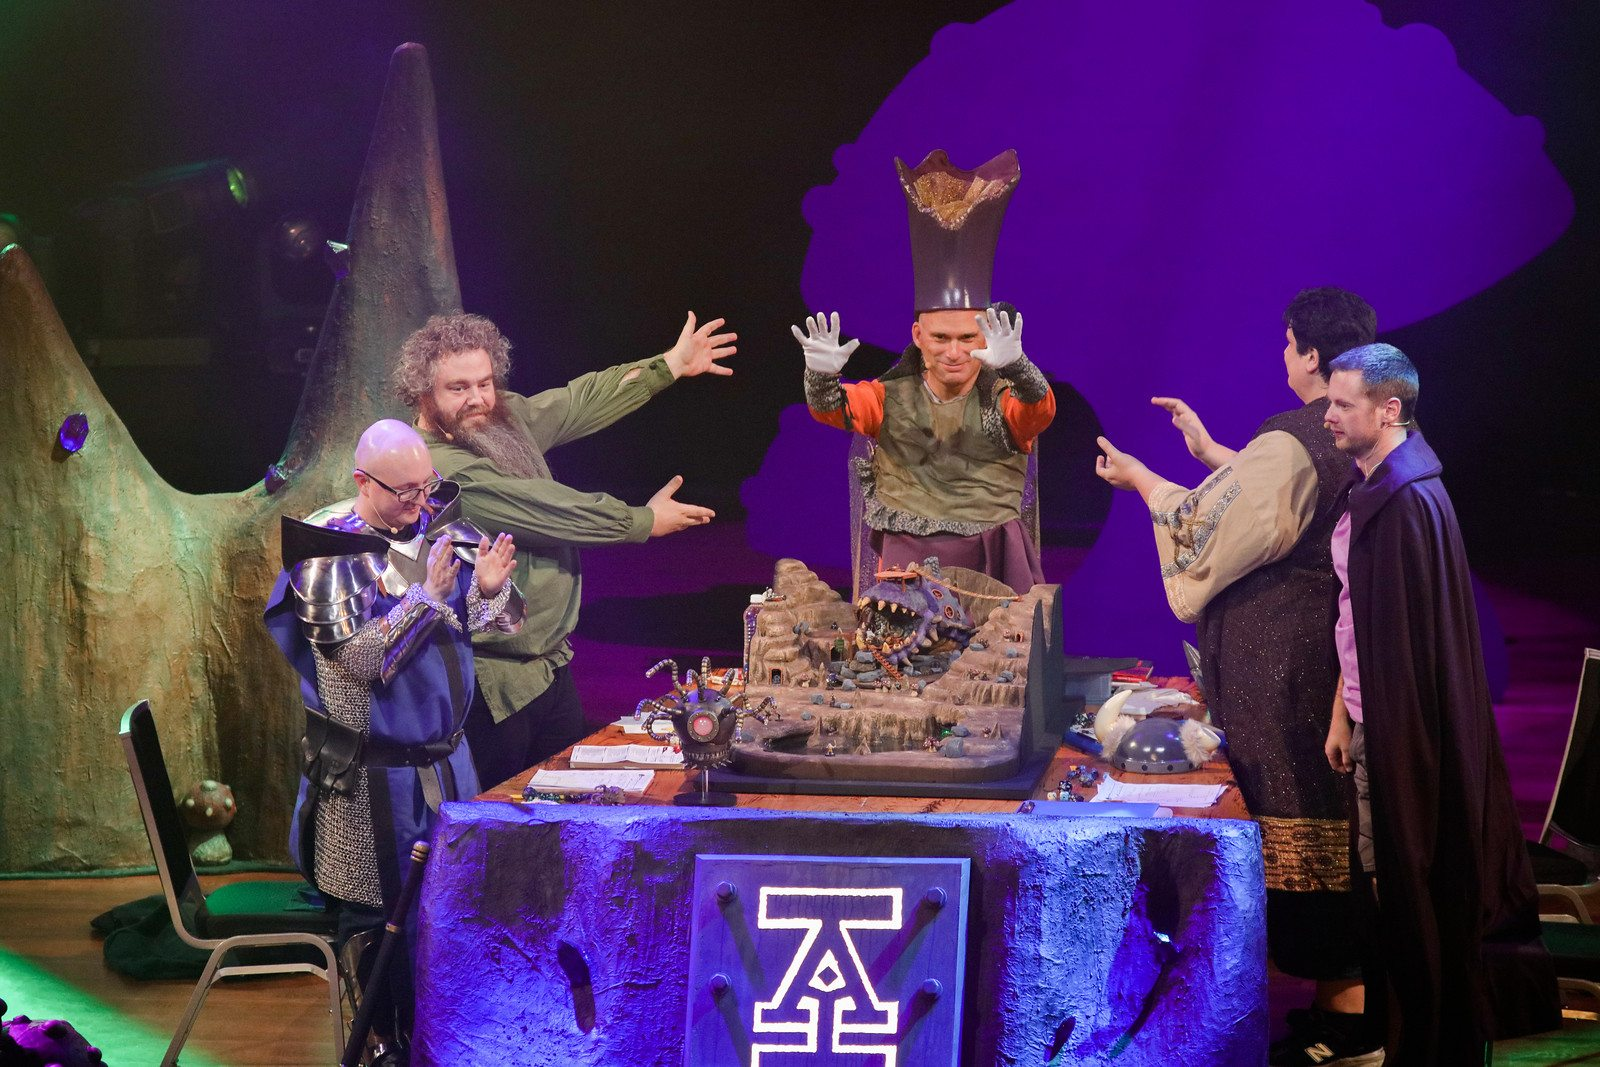 Acquisitions Inc at PAX West 2016: The Making of Cloud ...